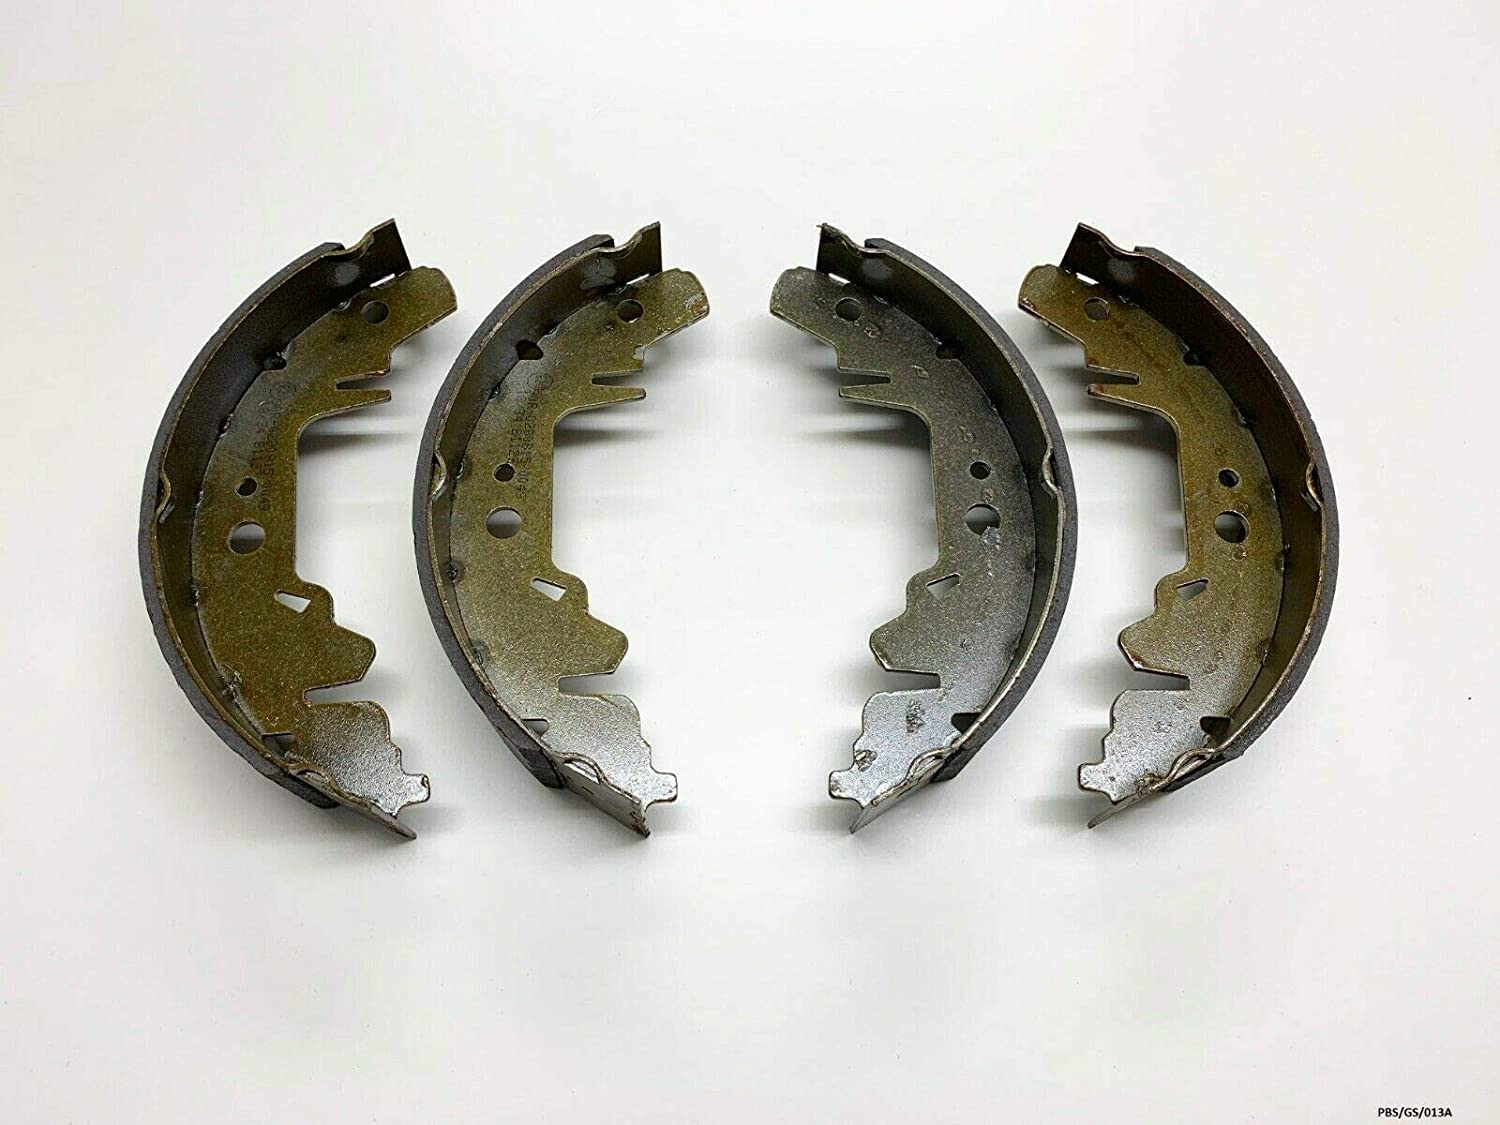 NTY Brake Shoes Set Voyager RG GS Rear Grand excellence 1996-2007 Cash special price